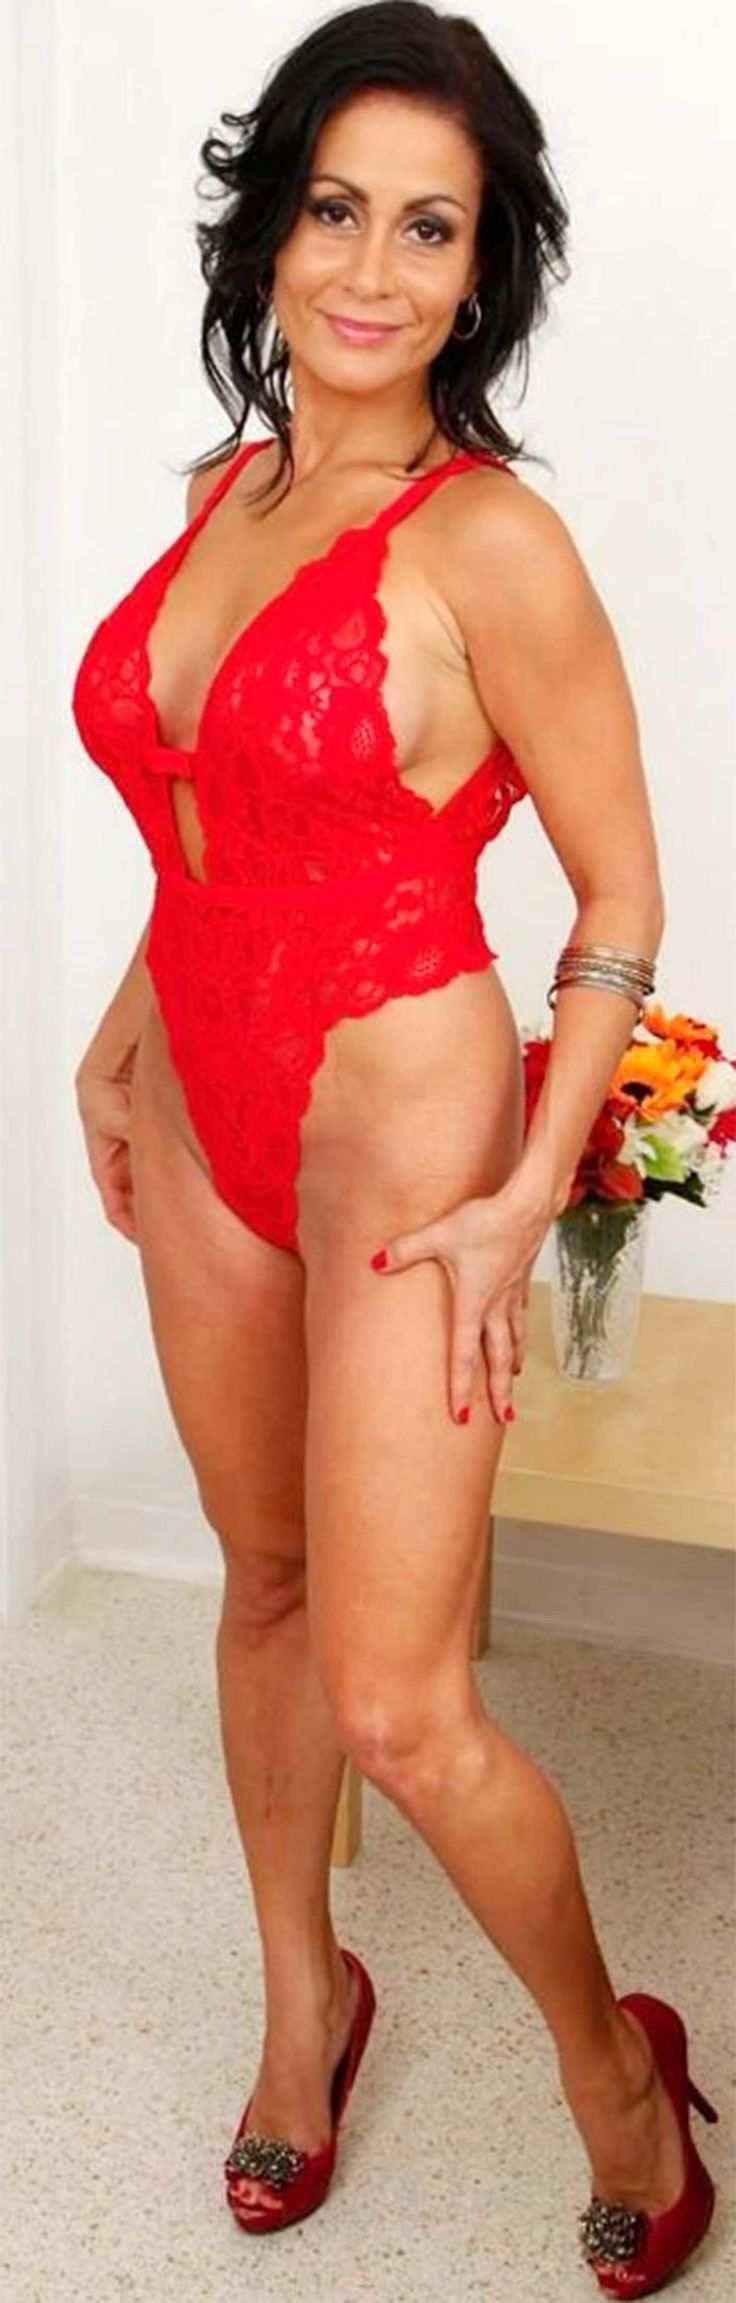 Latina Mature Women 82